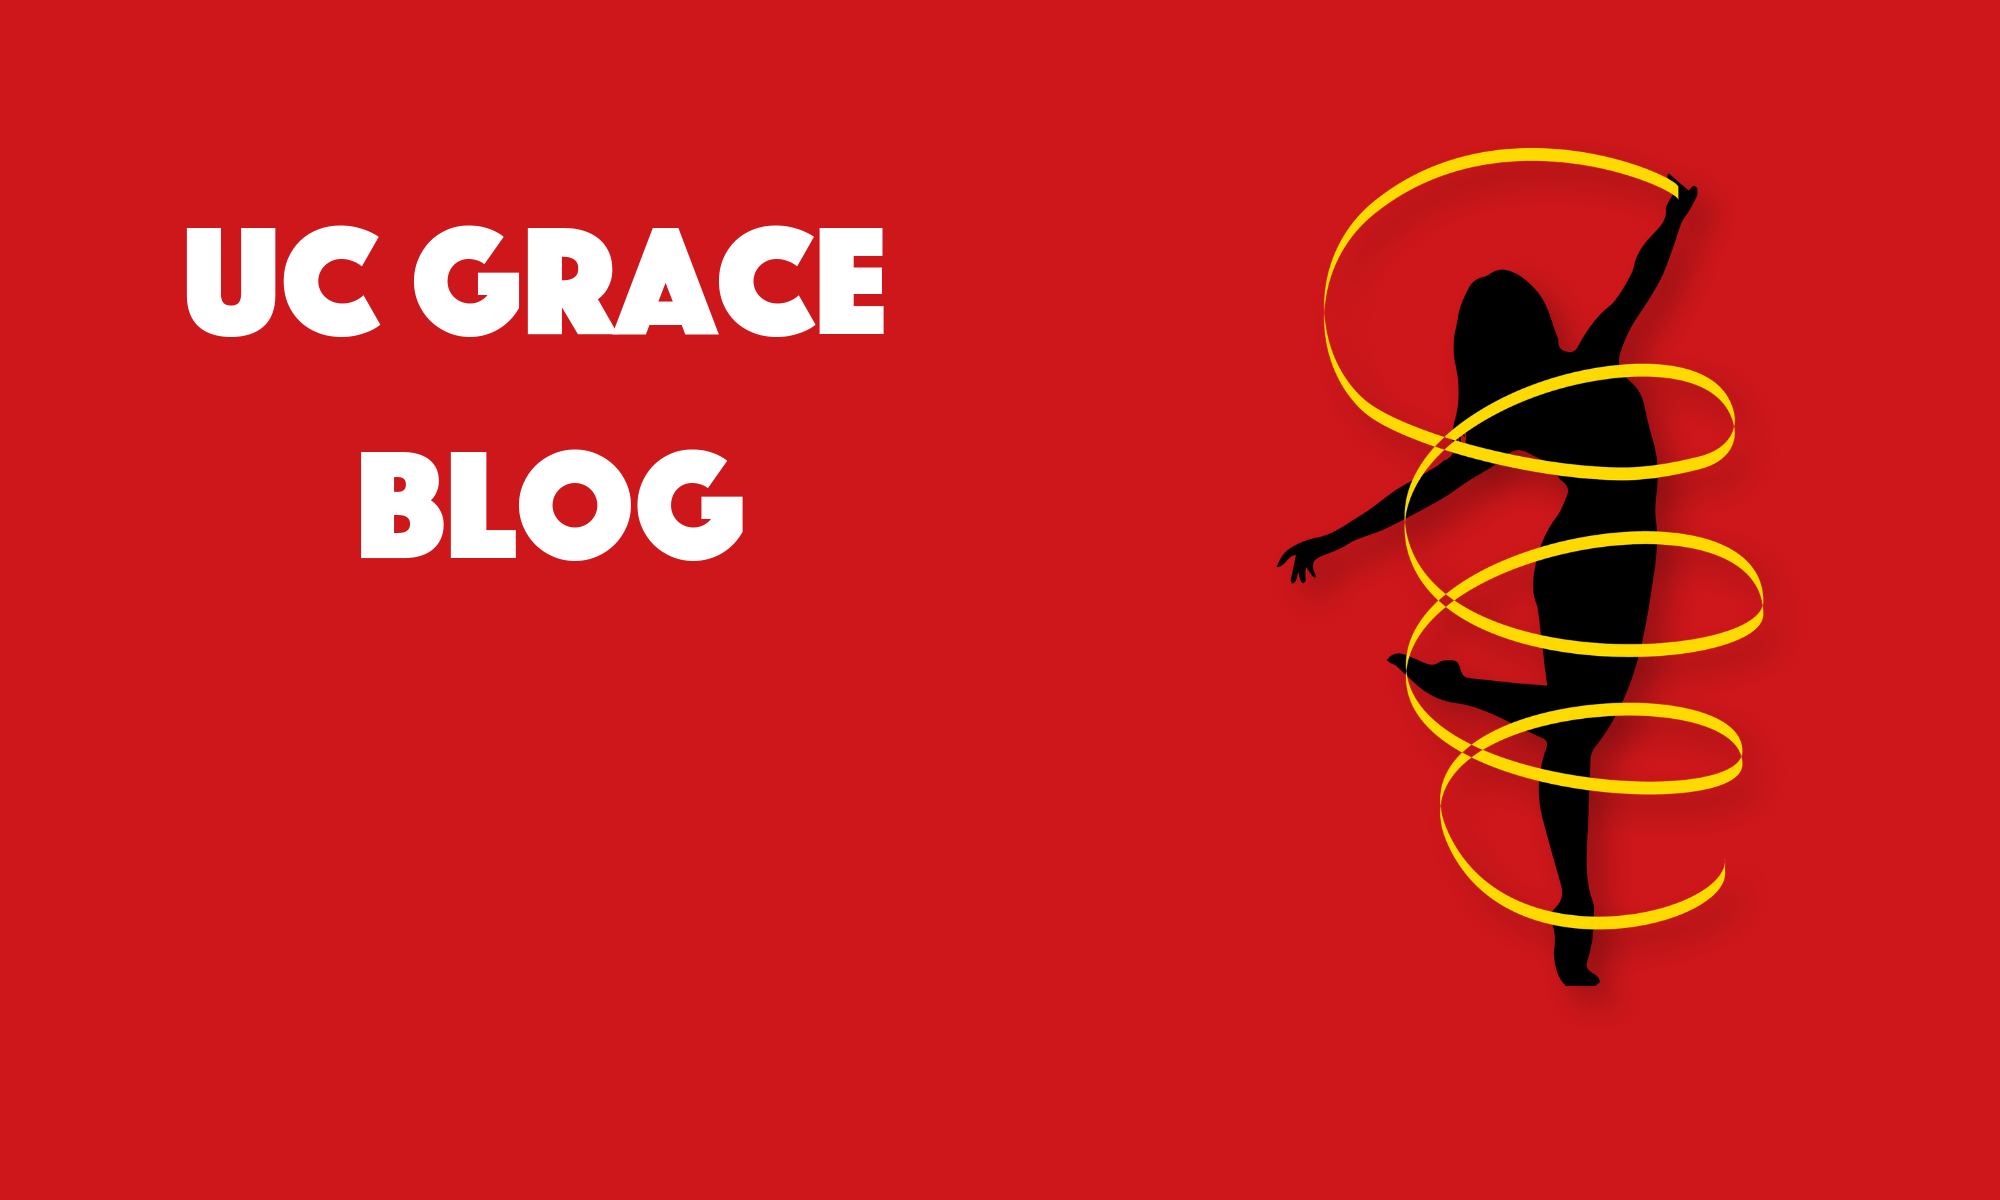 UC Grace Blog